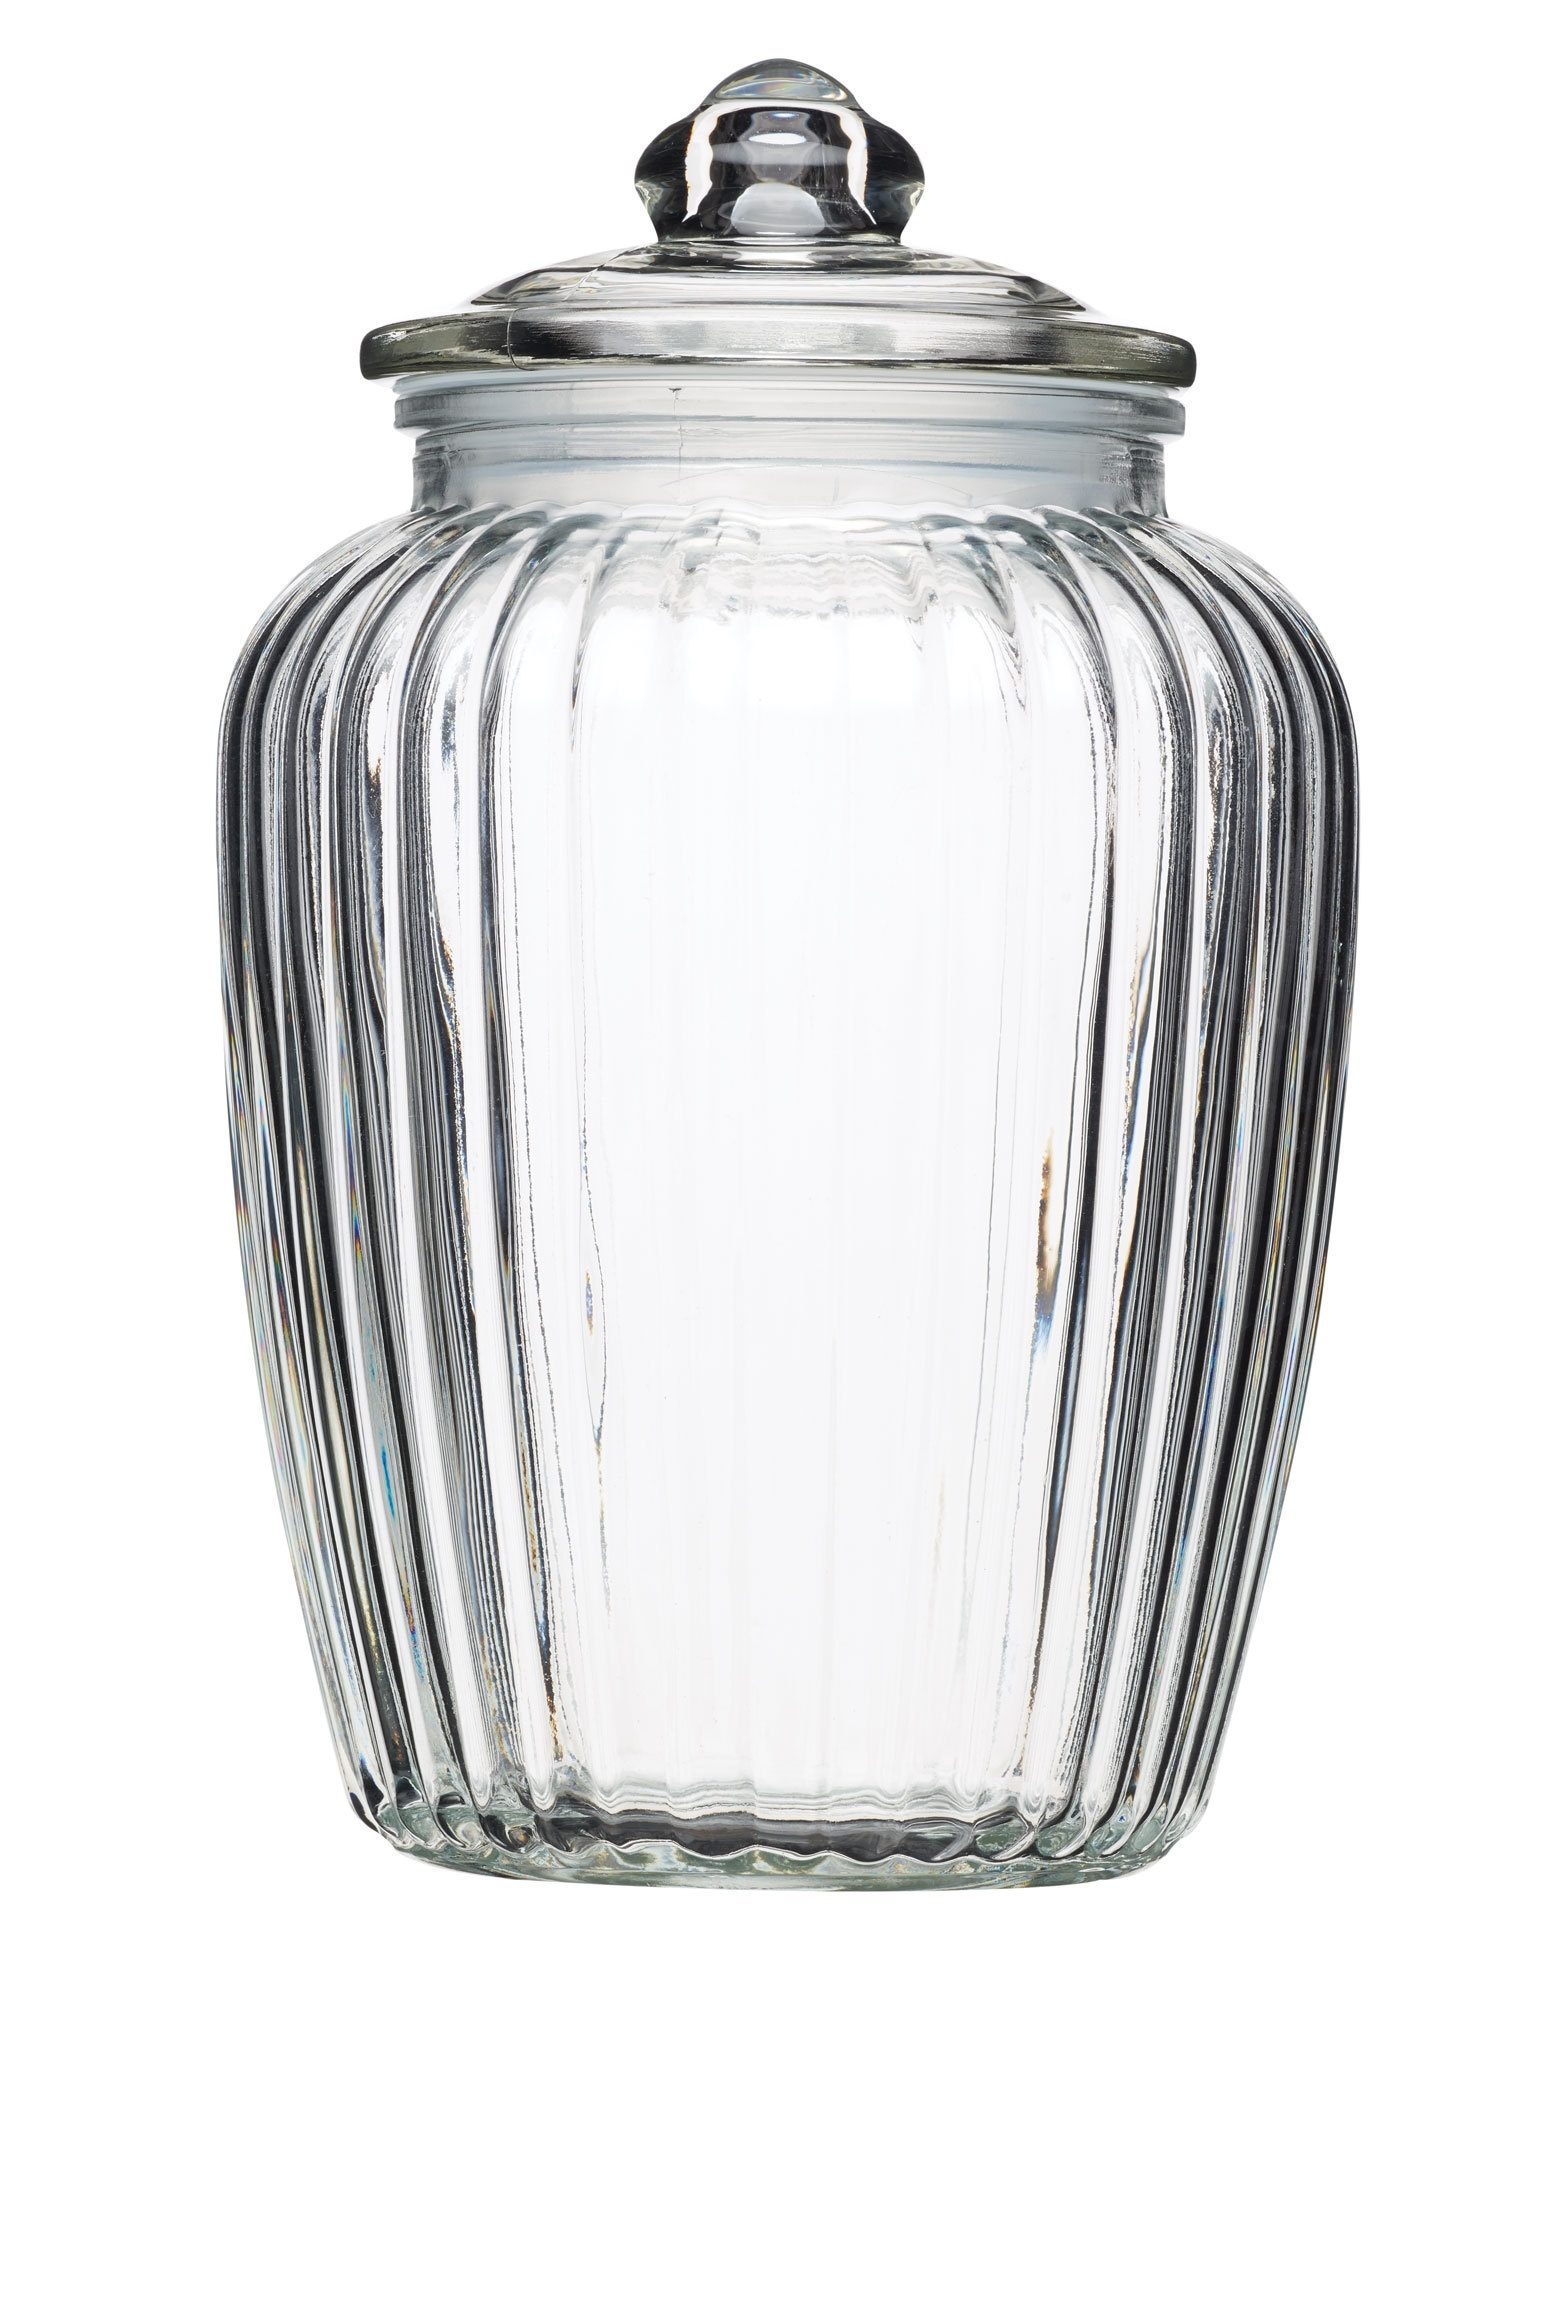 Home Made Multi Purpose Large Glass Storage Jar Storage